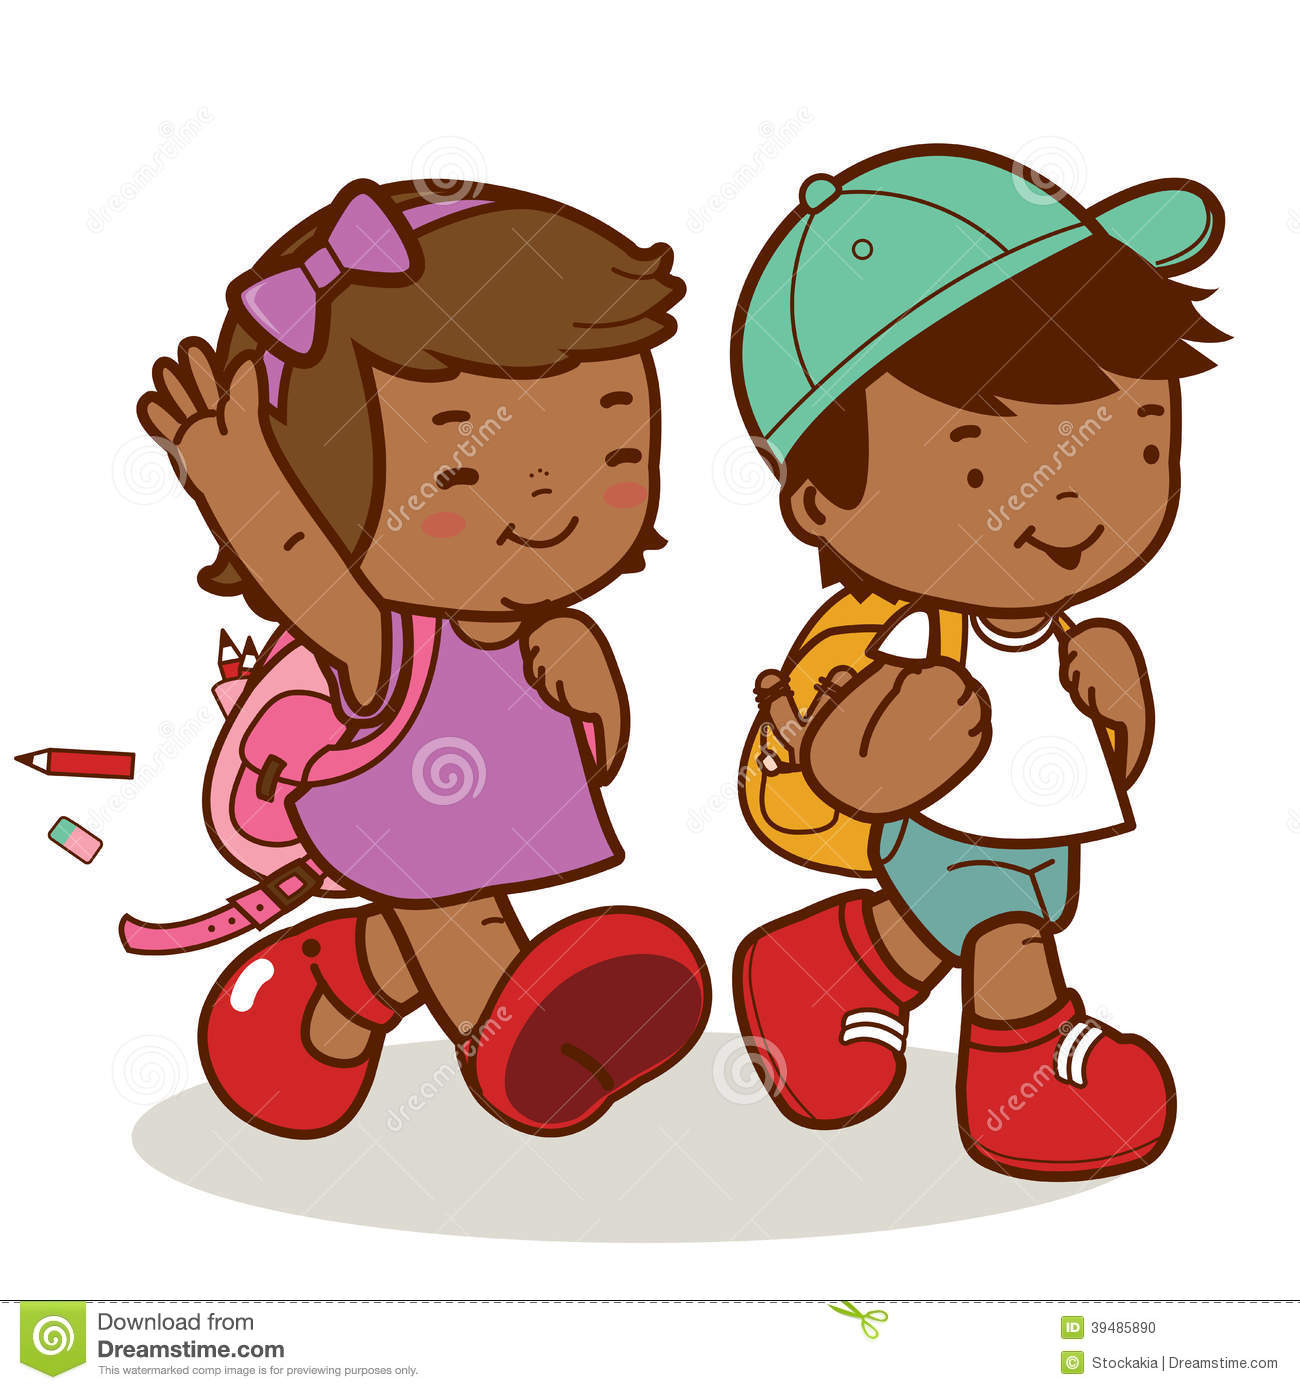 Clipart walkers from school clipart royalty free Boy and girl walker clipart - ClipartFest clipart royalty free